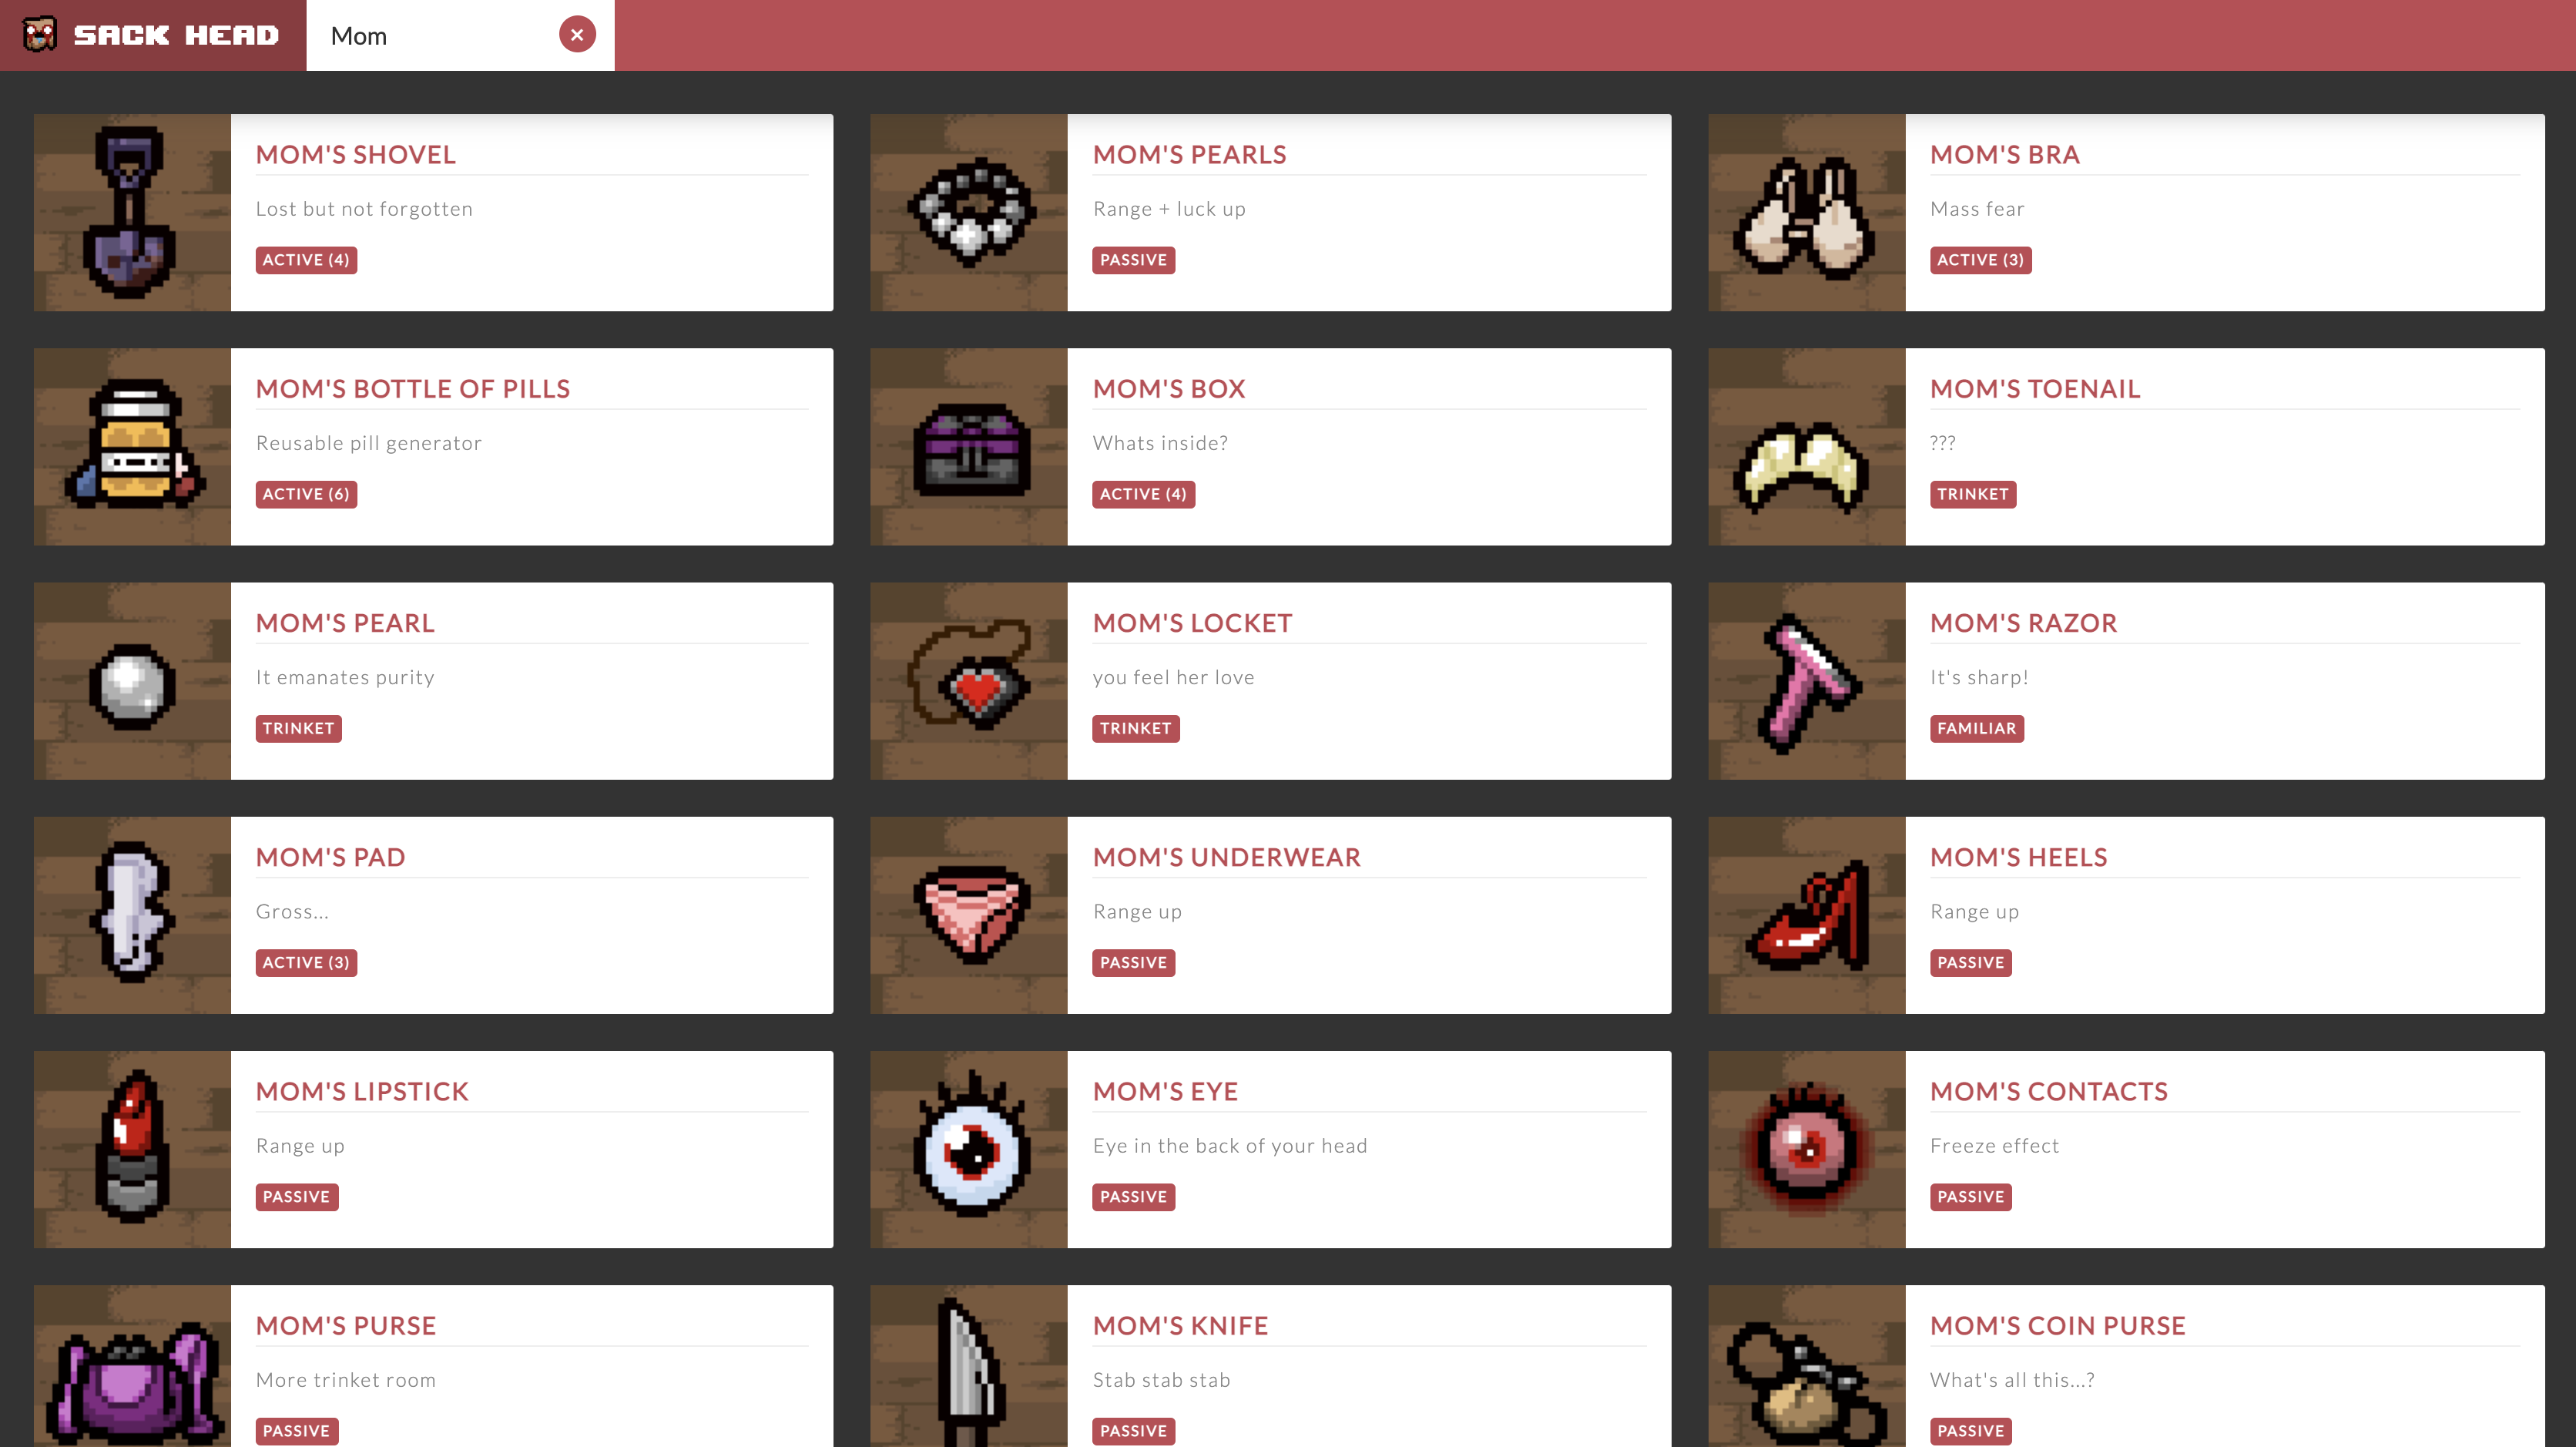 A screenshot of the Sack Head application displaying a filtered list of items.